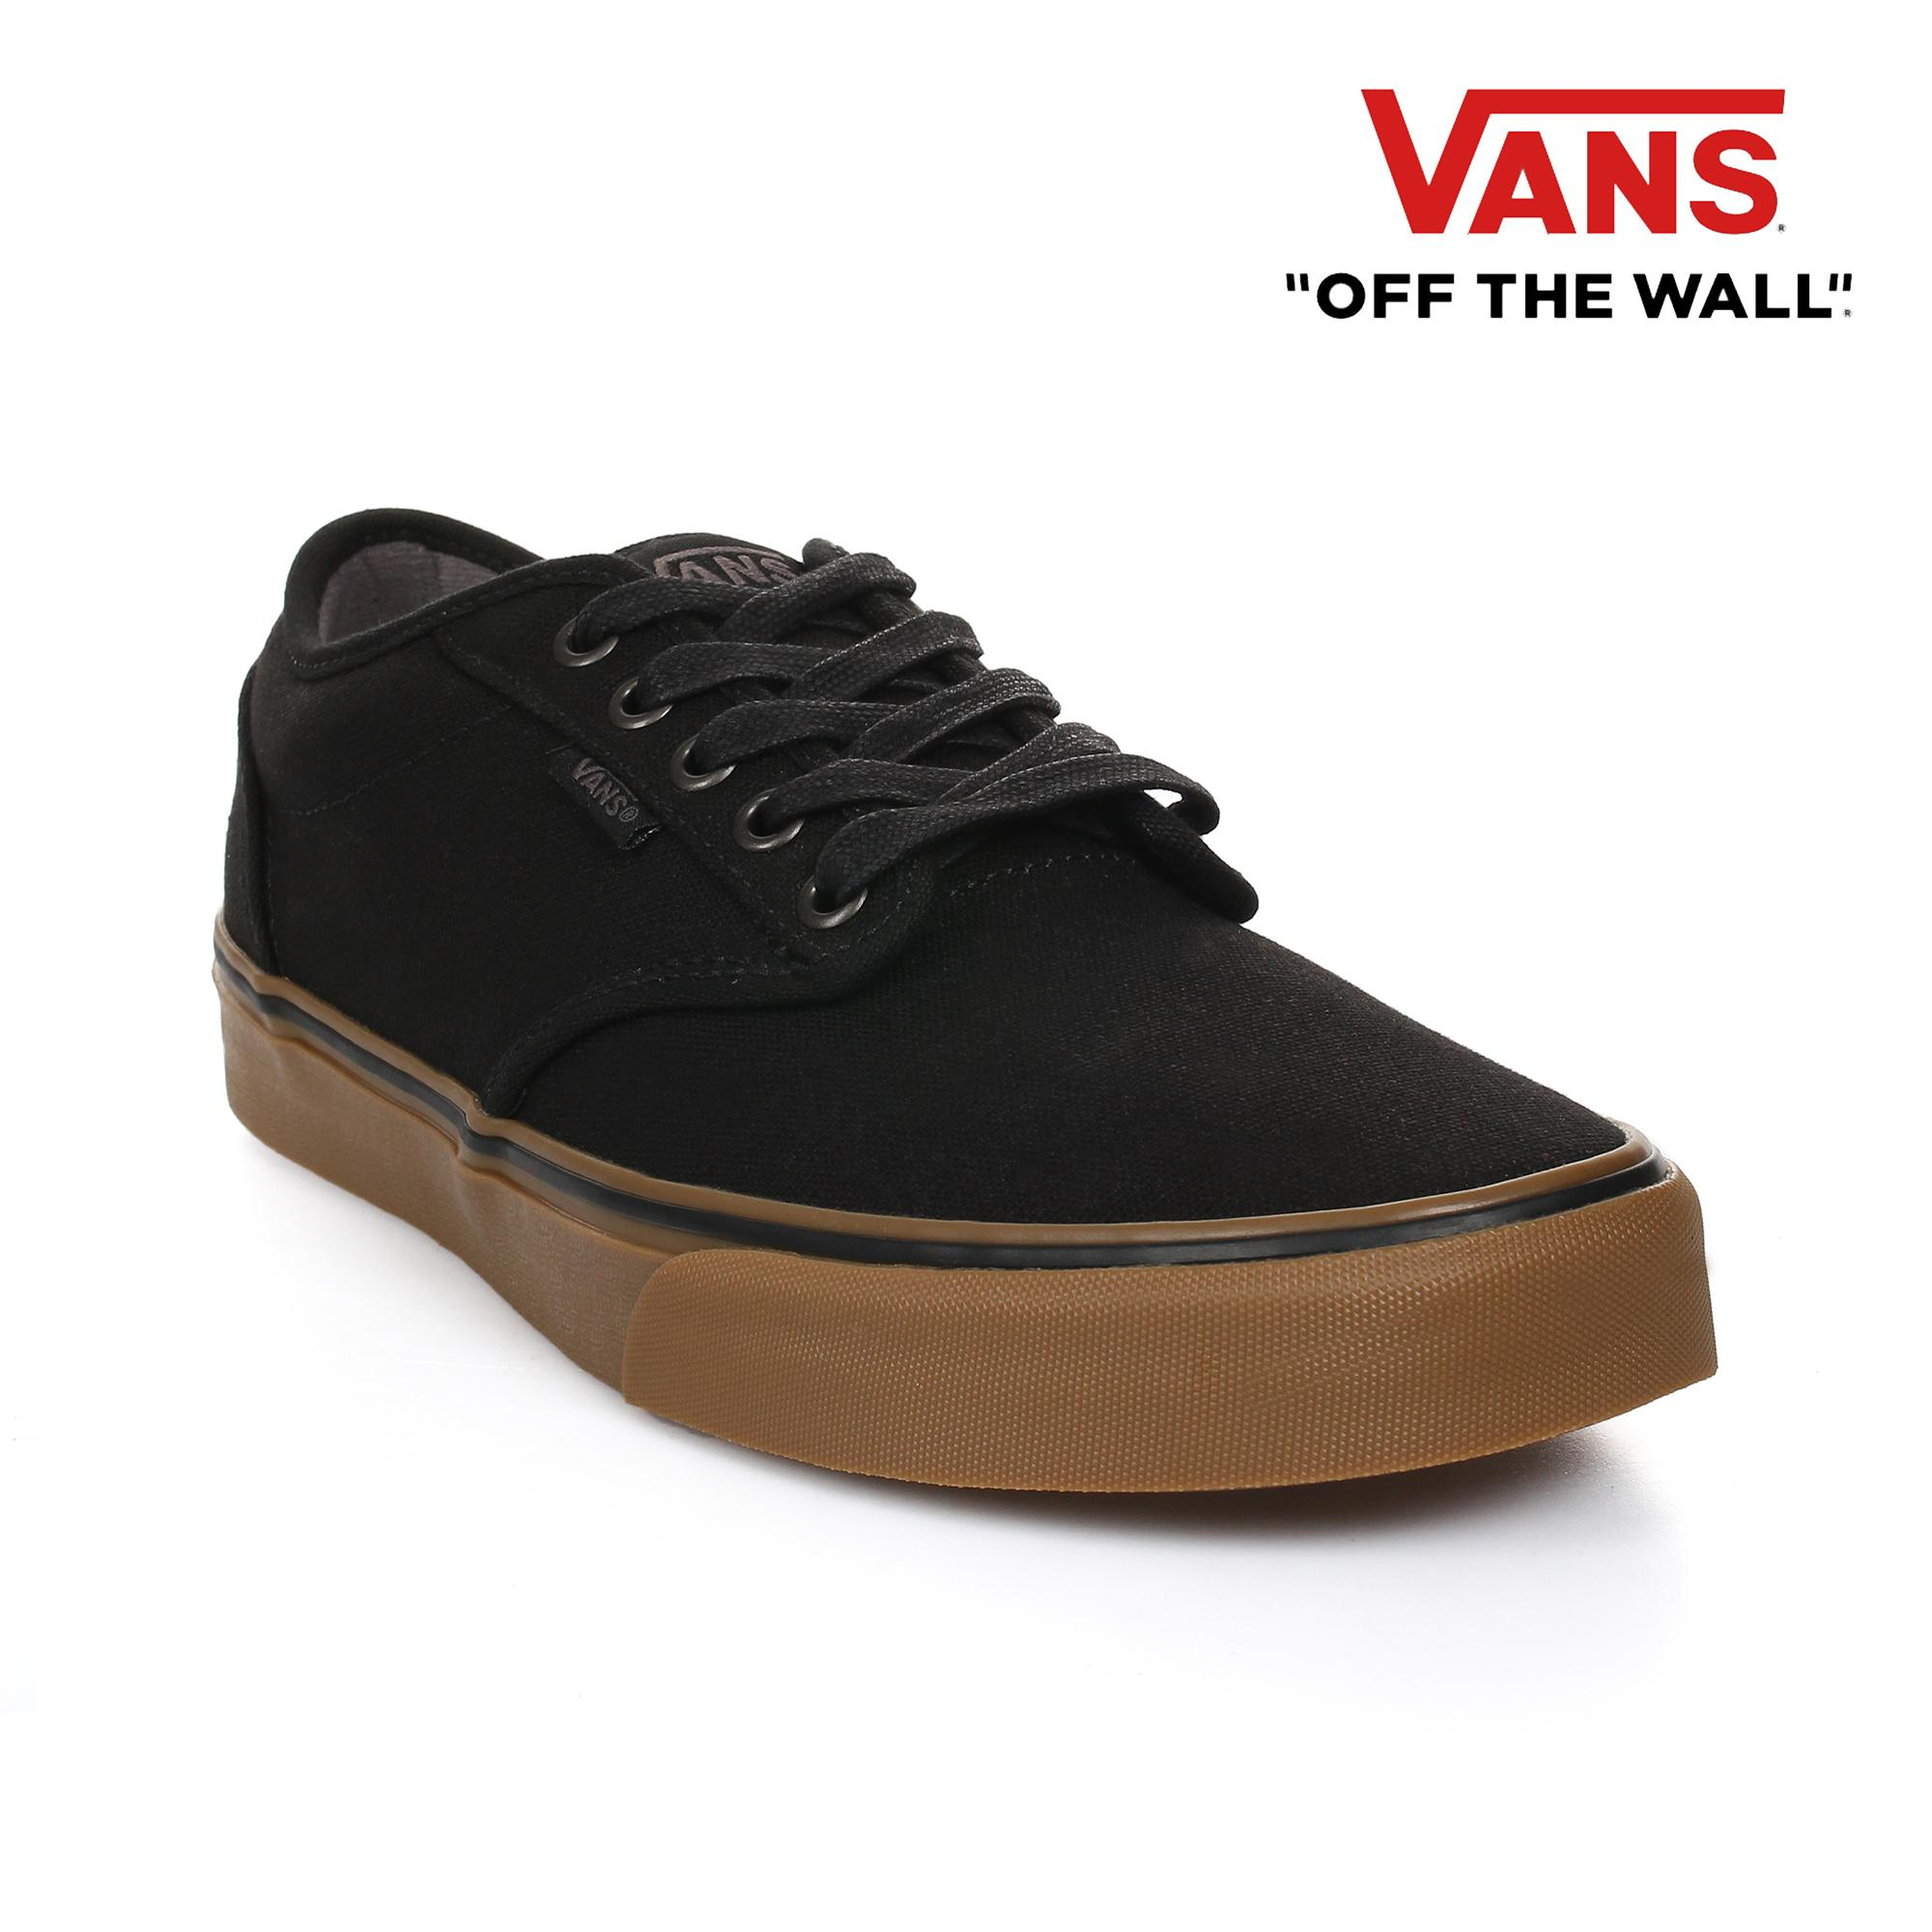 a53d2f10e4 Vans Men's Atwood 12oz Canvas Sneakers (Black / Gum)